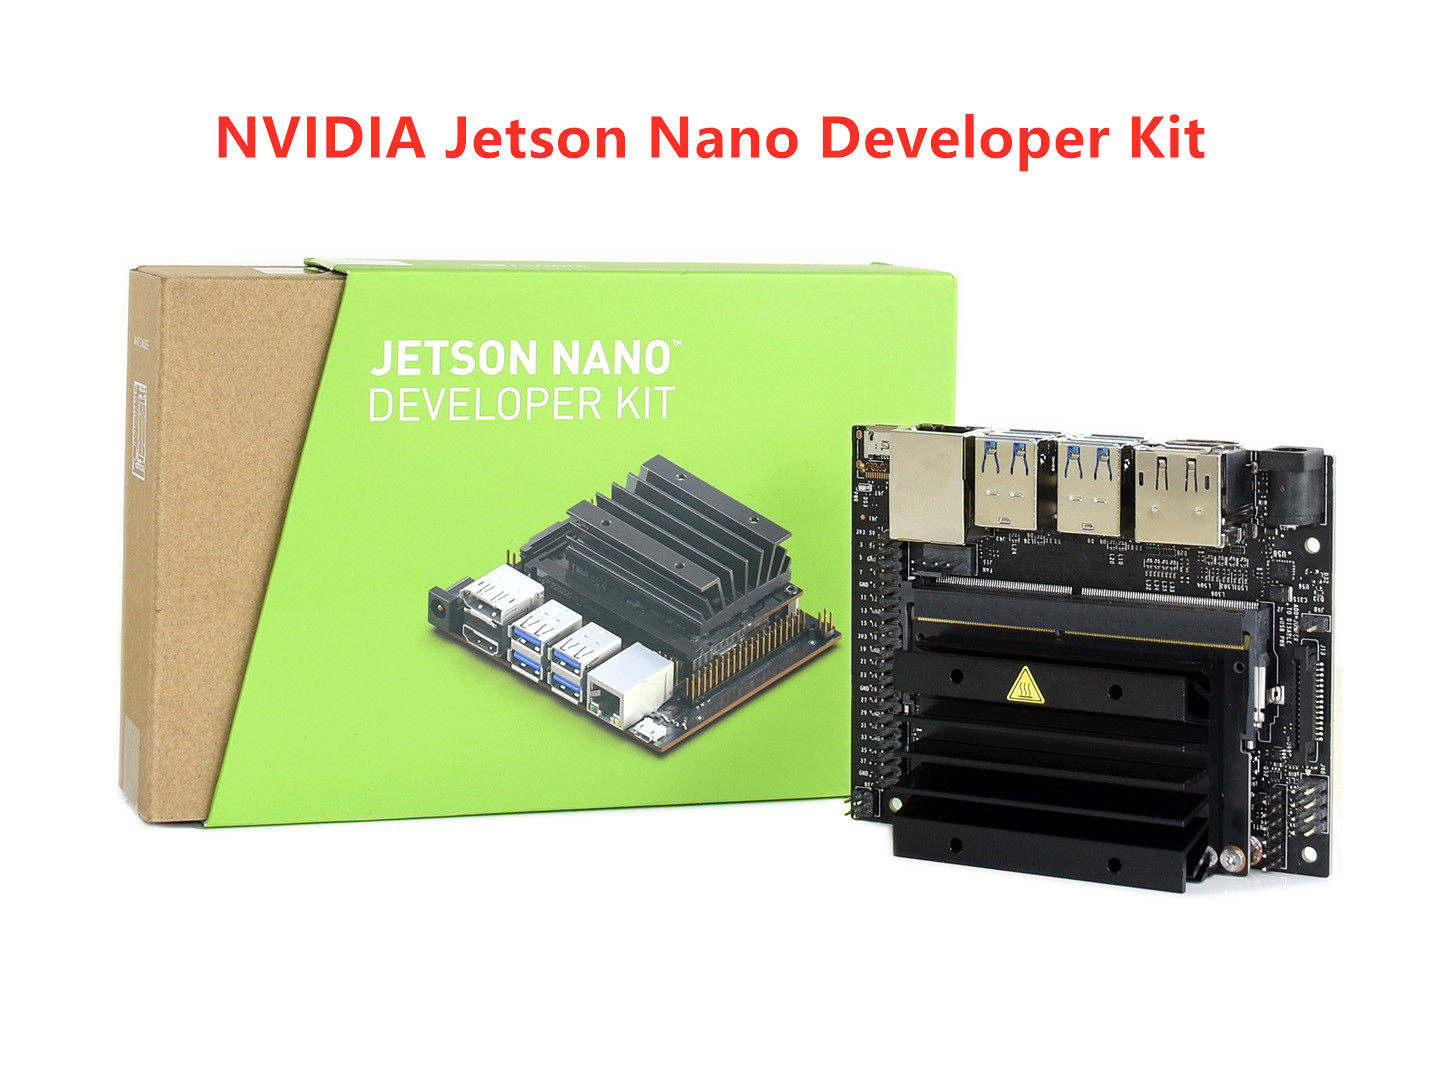 NVIDIA Jetson Nano Developer Kit Small AI Computer 128 core Maxwell GPU quad core ARM Cortex